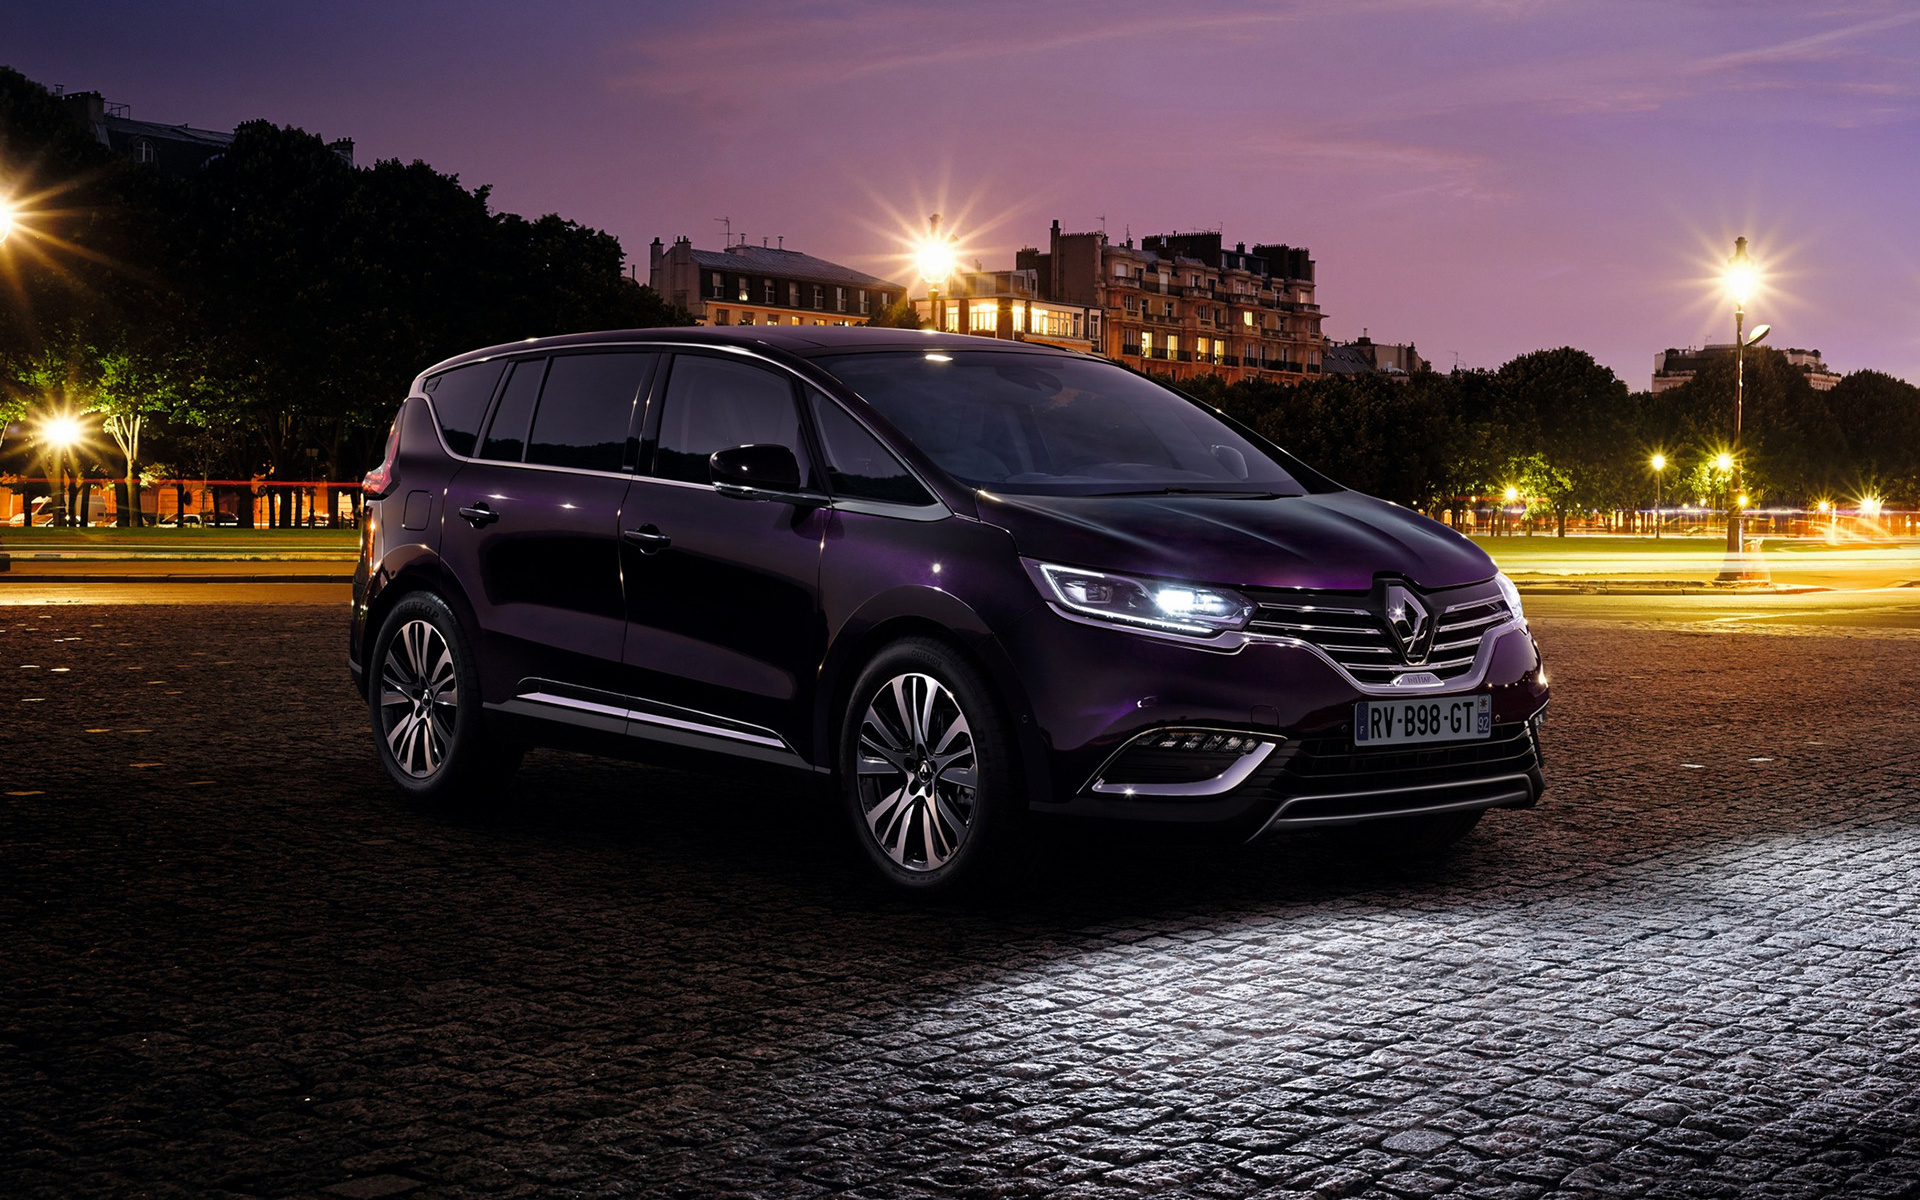 Renault Espace Initiale Paris 2015 Wallpapers And HD